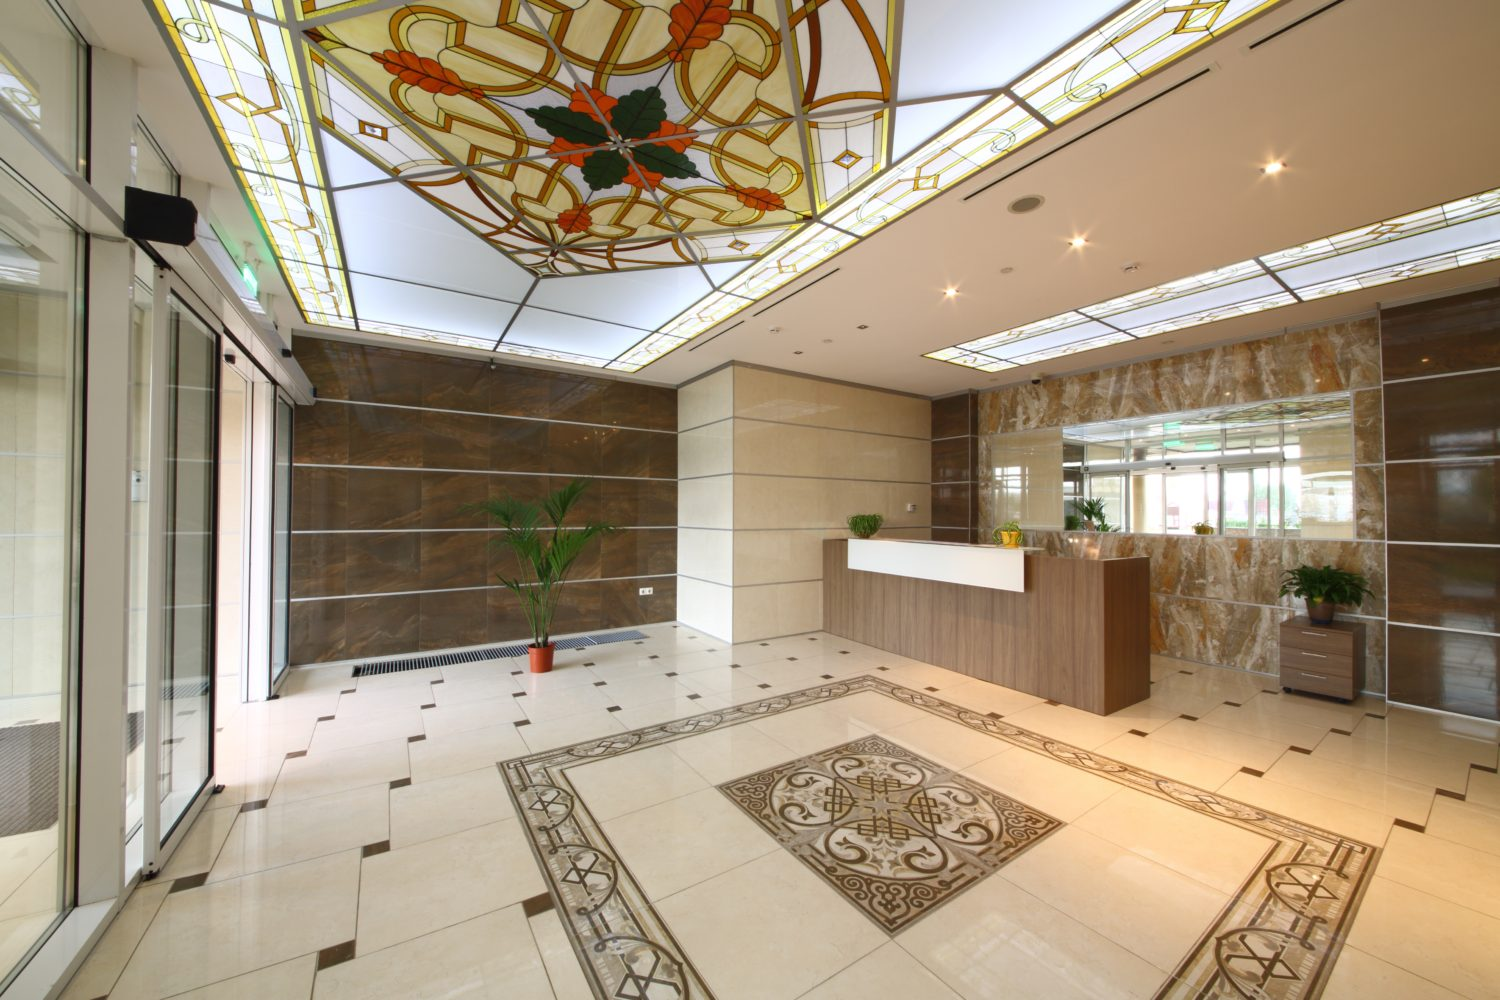 The elegant front with stained glass ceilings and granite floor